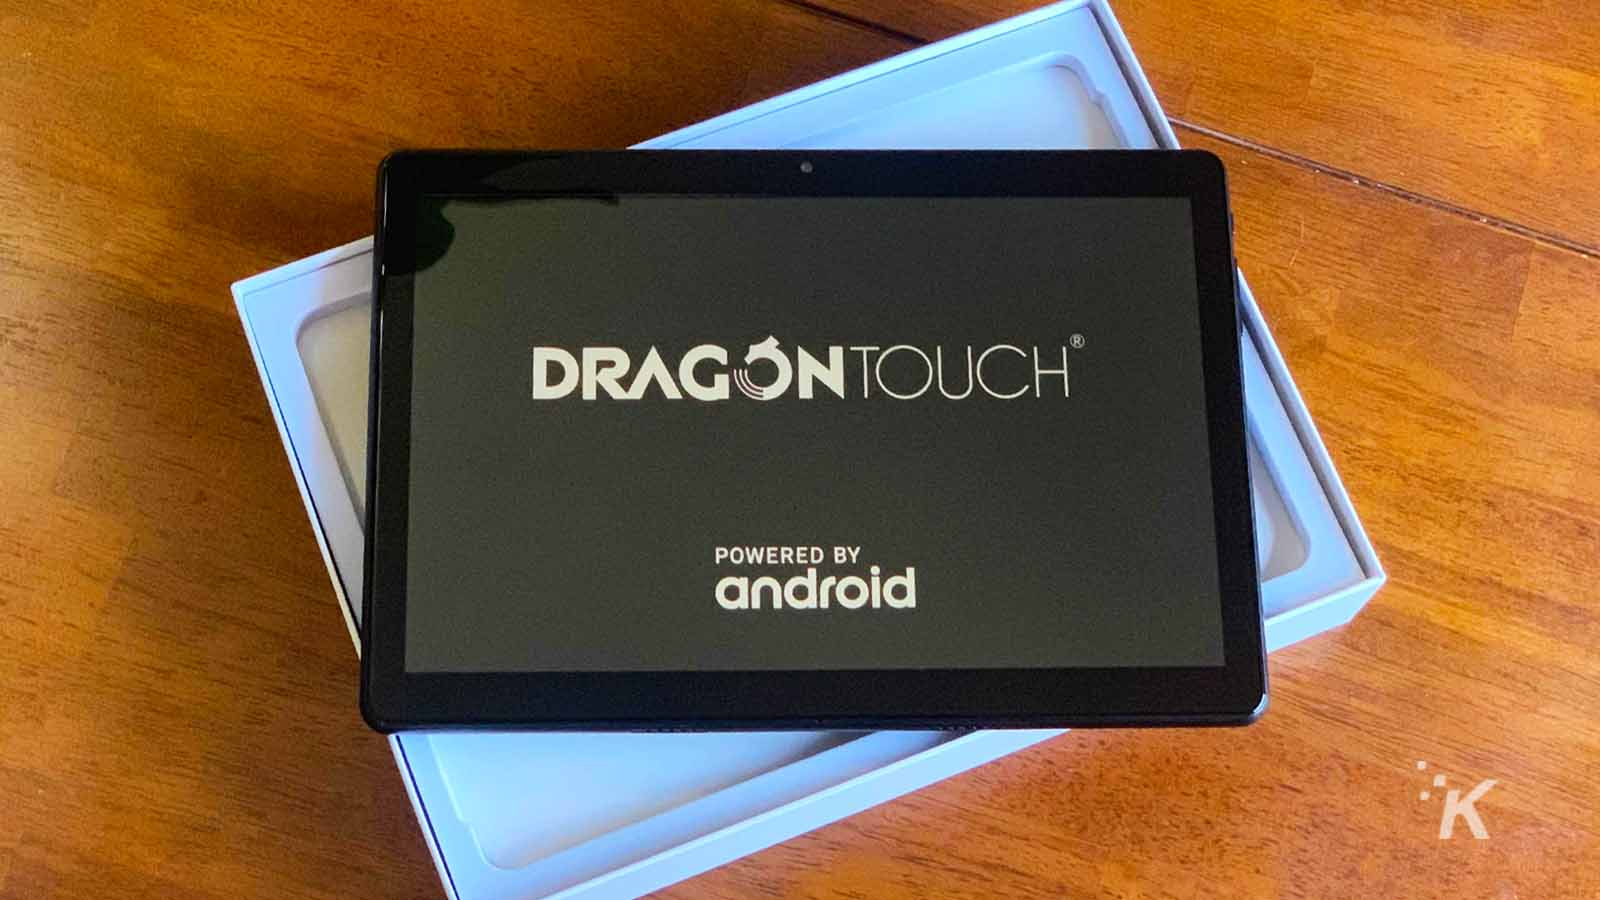 dragon touch tablet on table